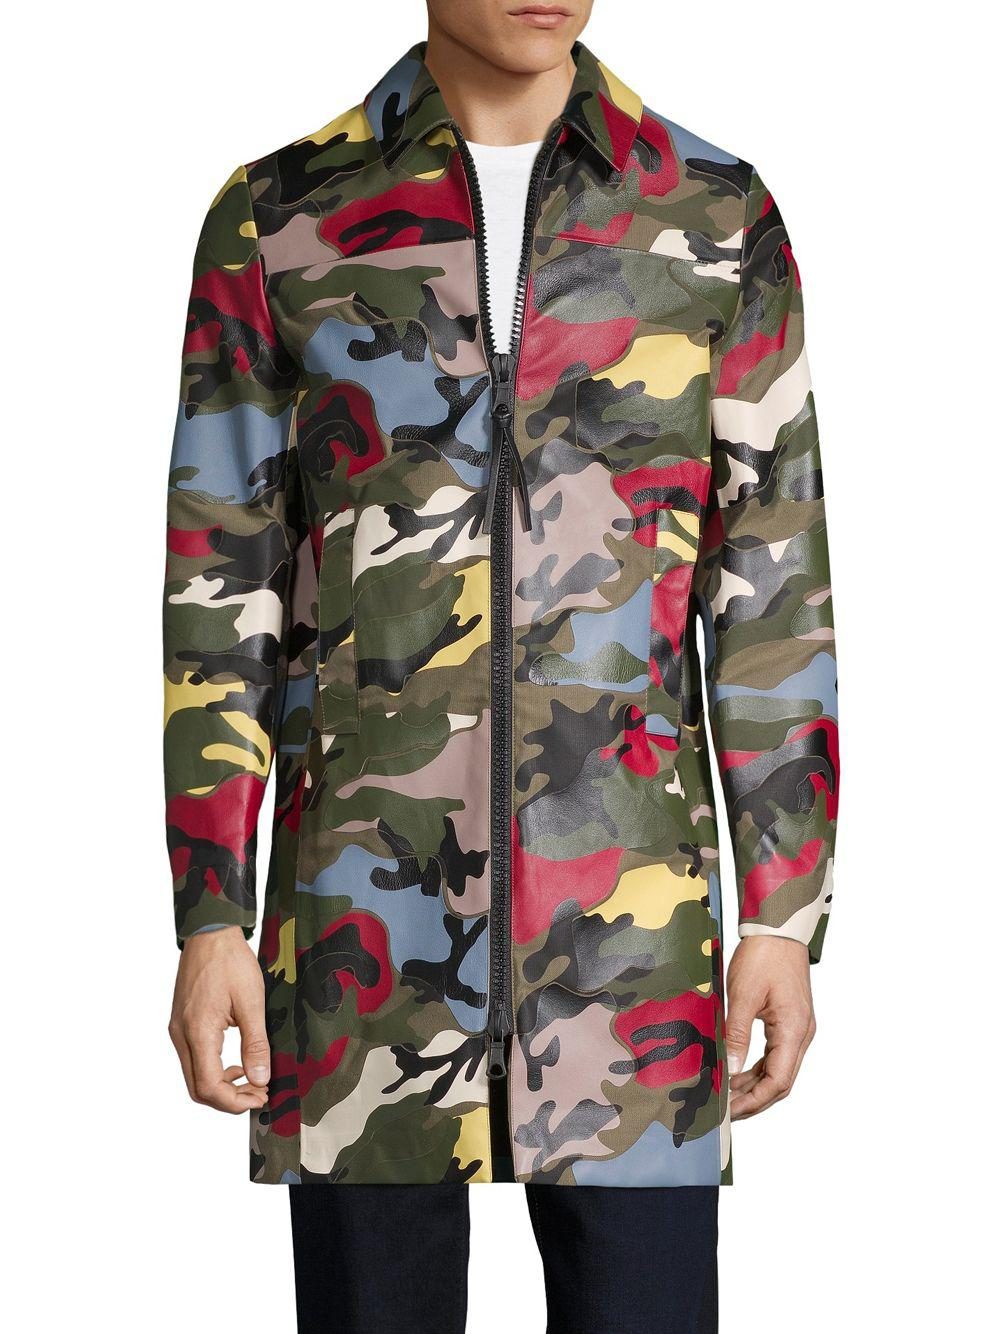 Valentino Multicolored Camouflage Coat in Green for Men - Lyst 1f0ed016196